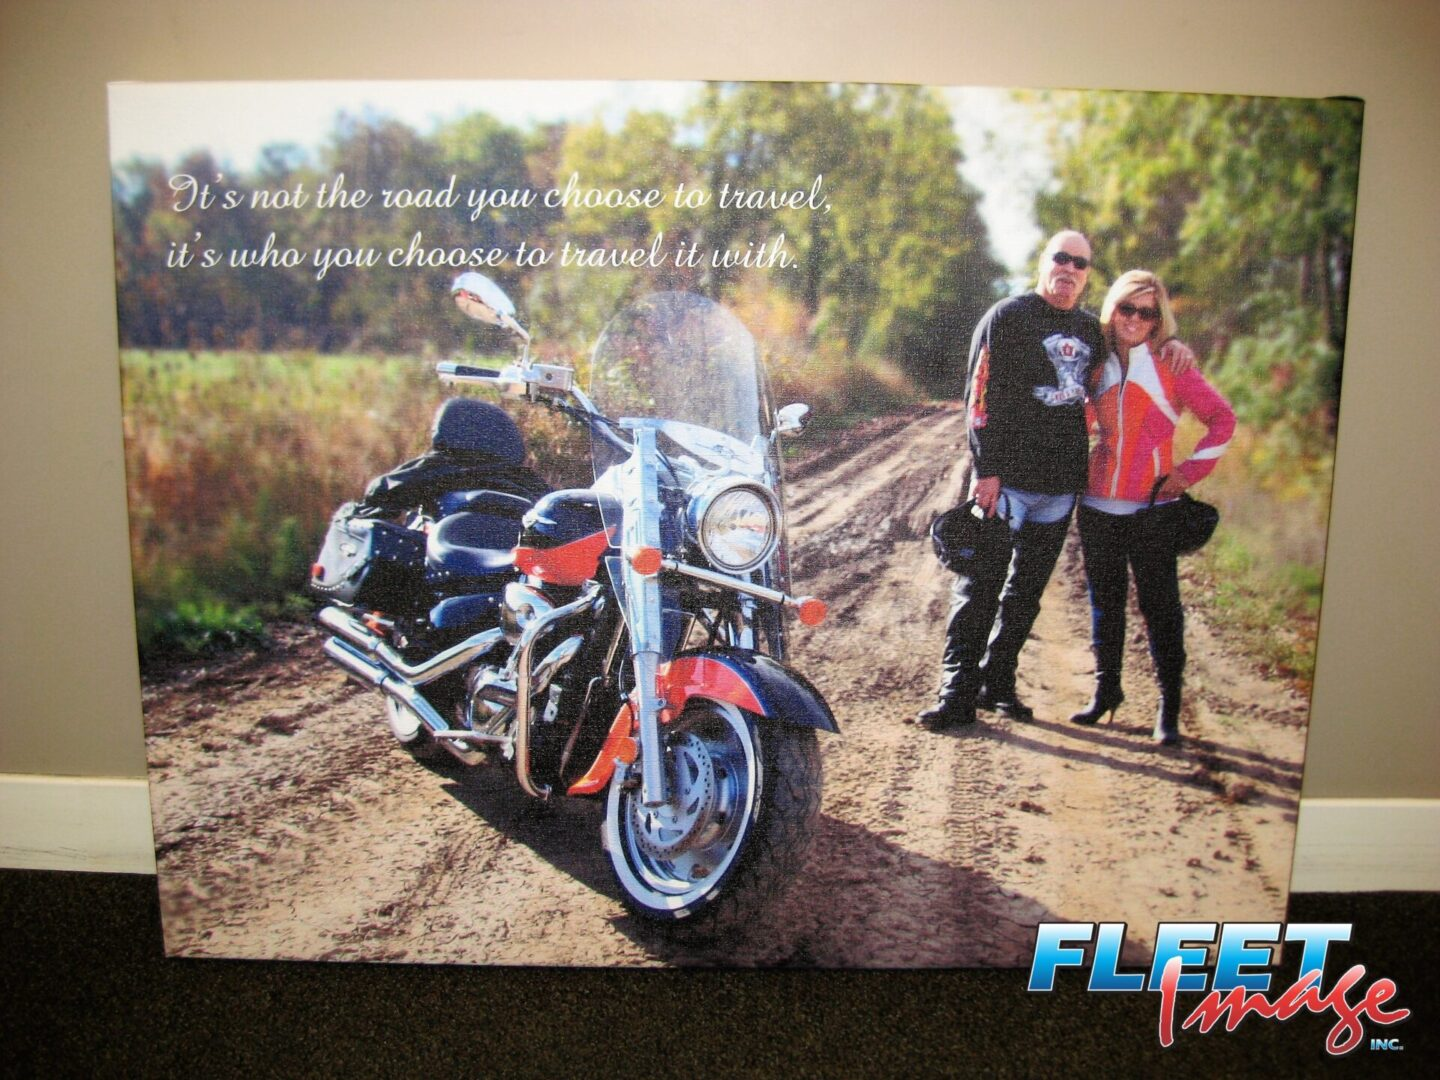 Wall art of a couple motorcyclists